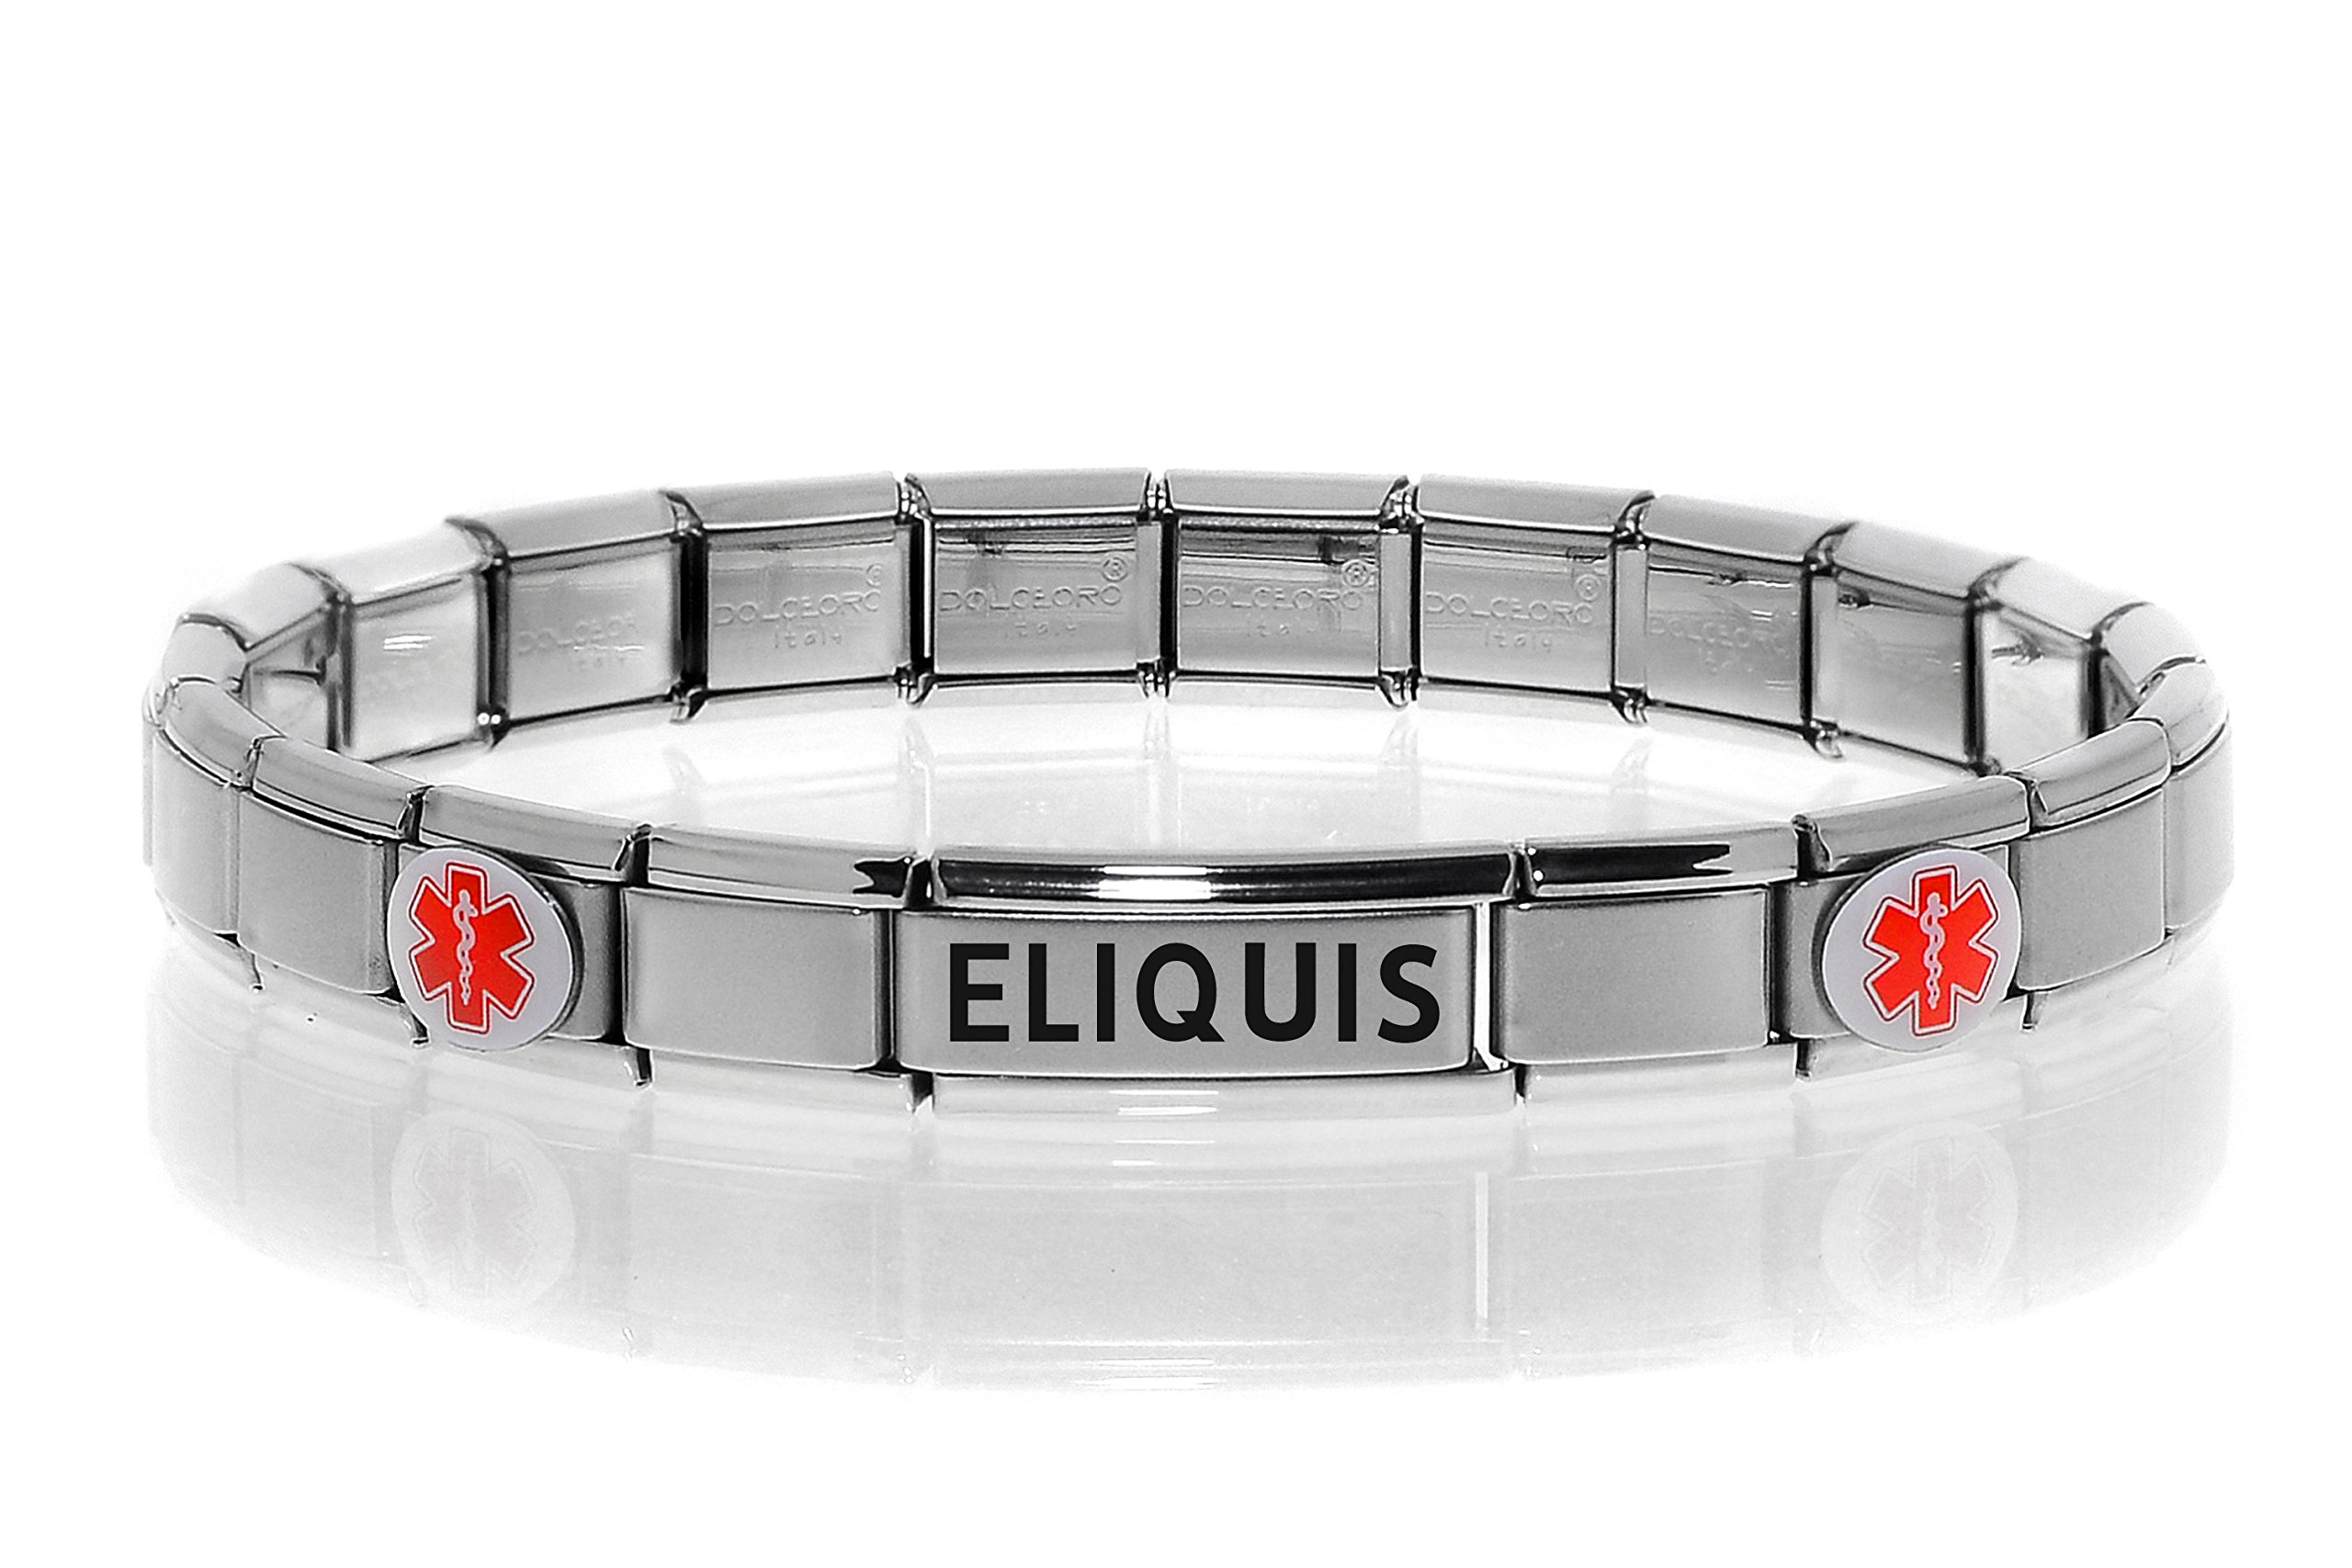 Dolceoro ELIQUIS Medical Alert Bracelet - Stainless Steel Stretchable Italian Style Modular Charm Links